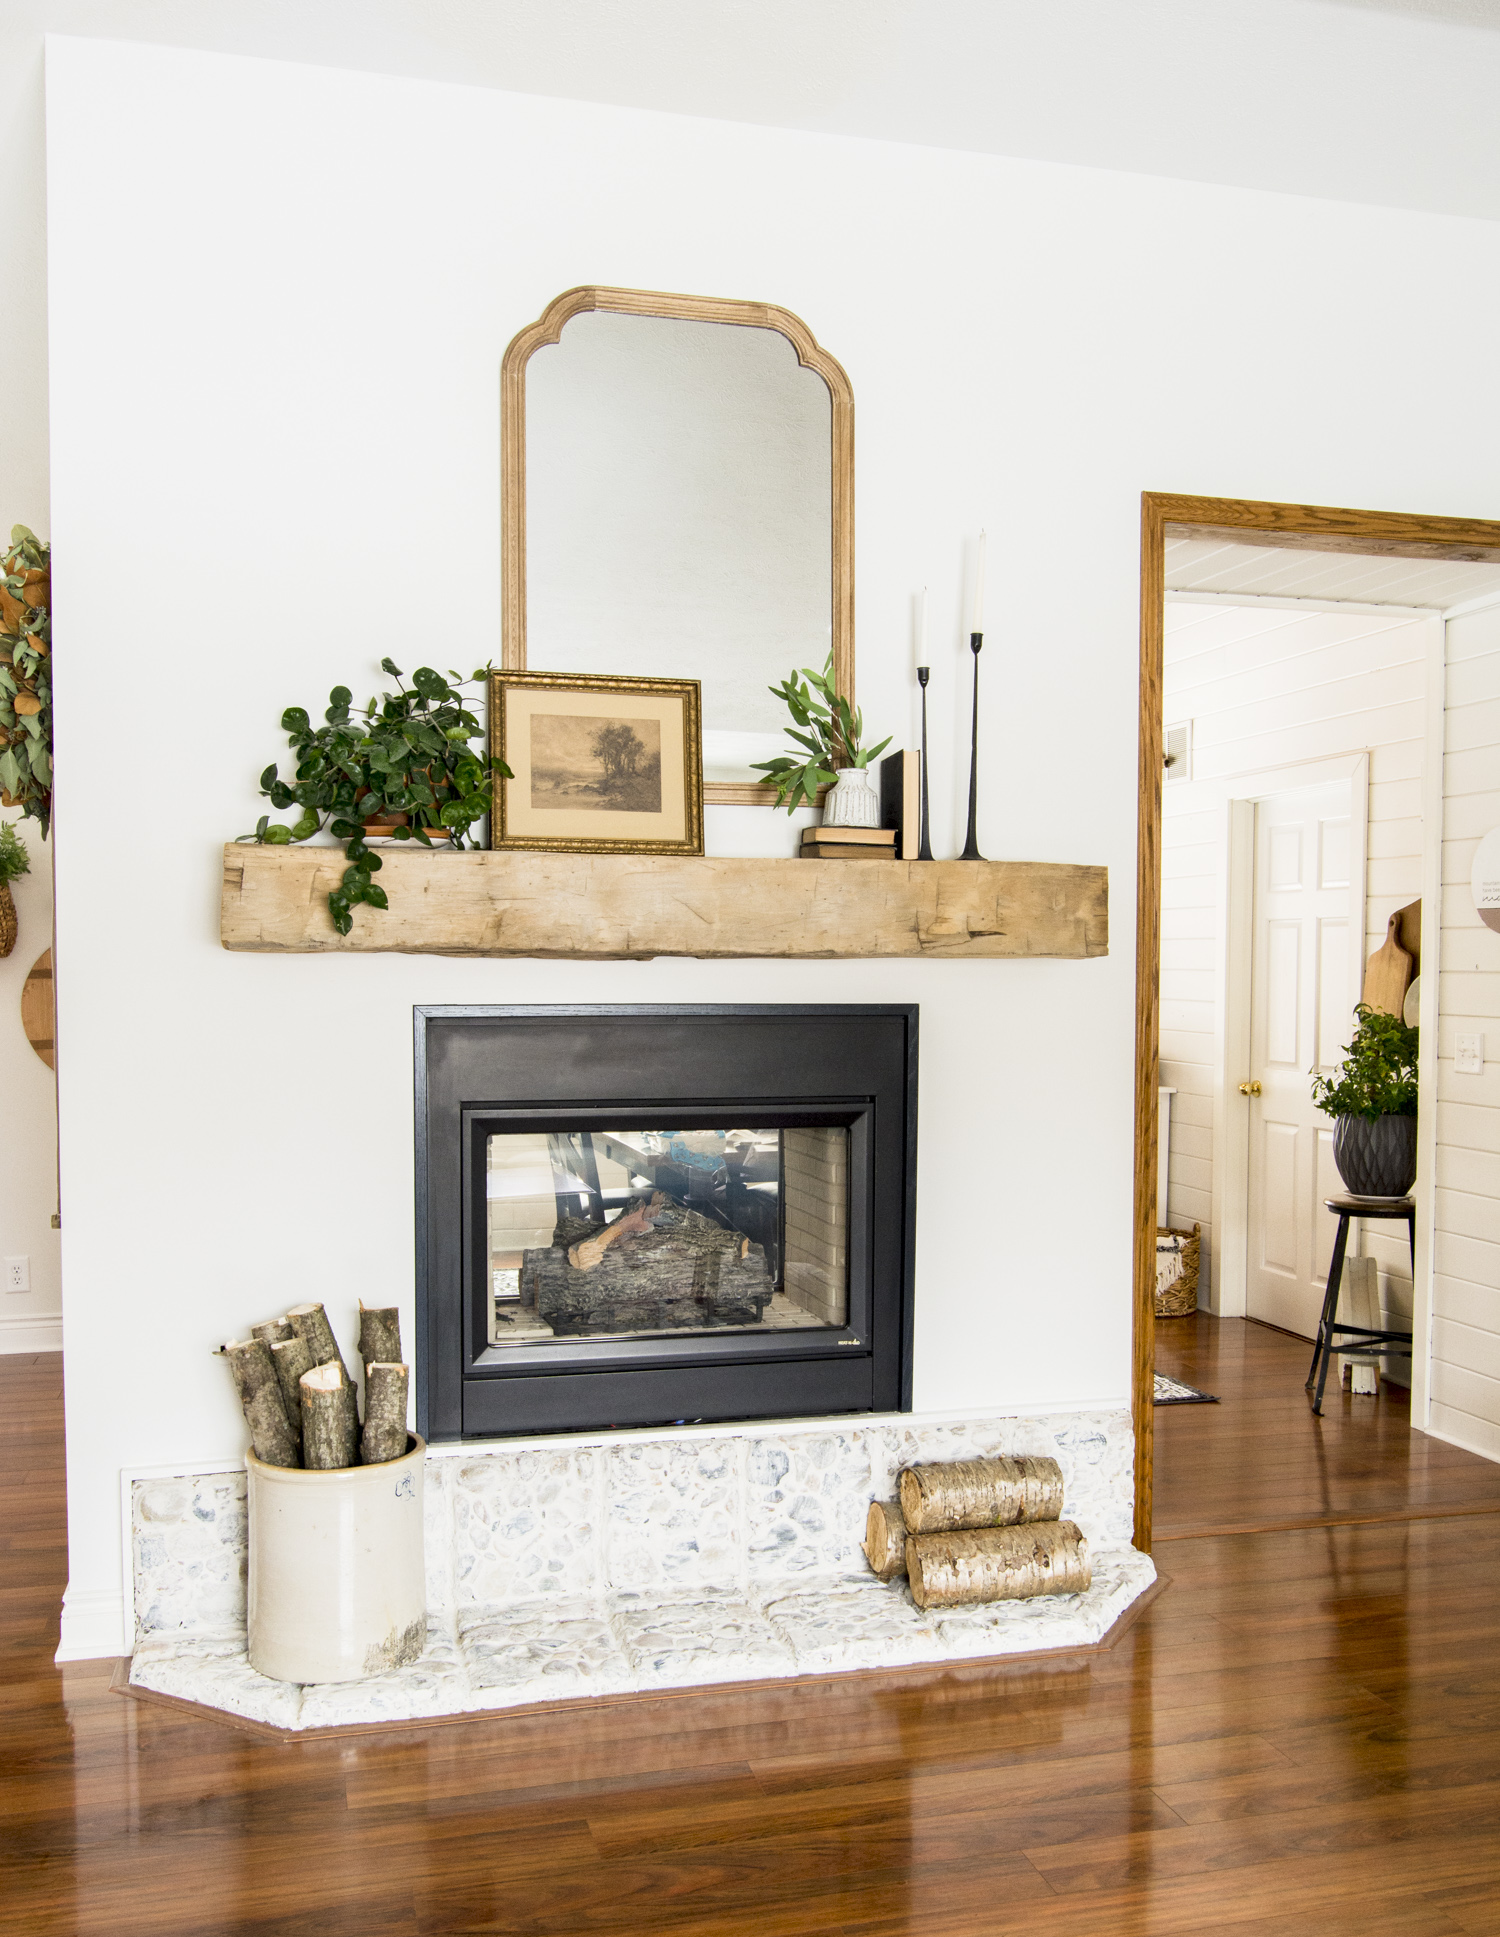 How to Install a Barn Beam Mantel.